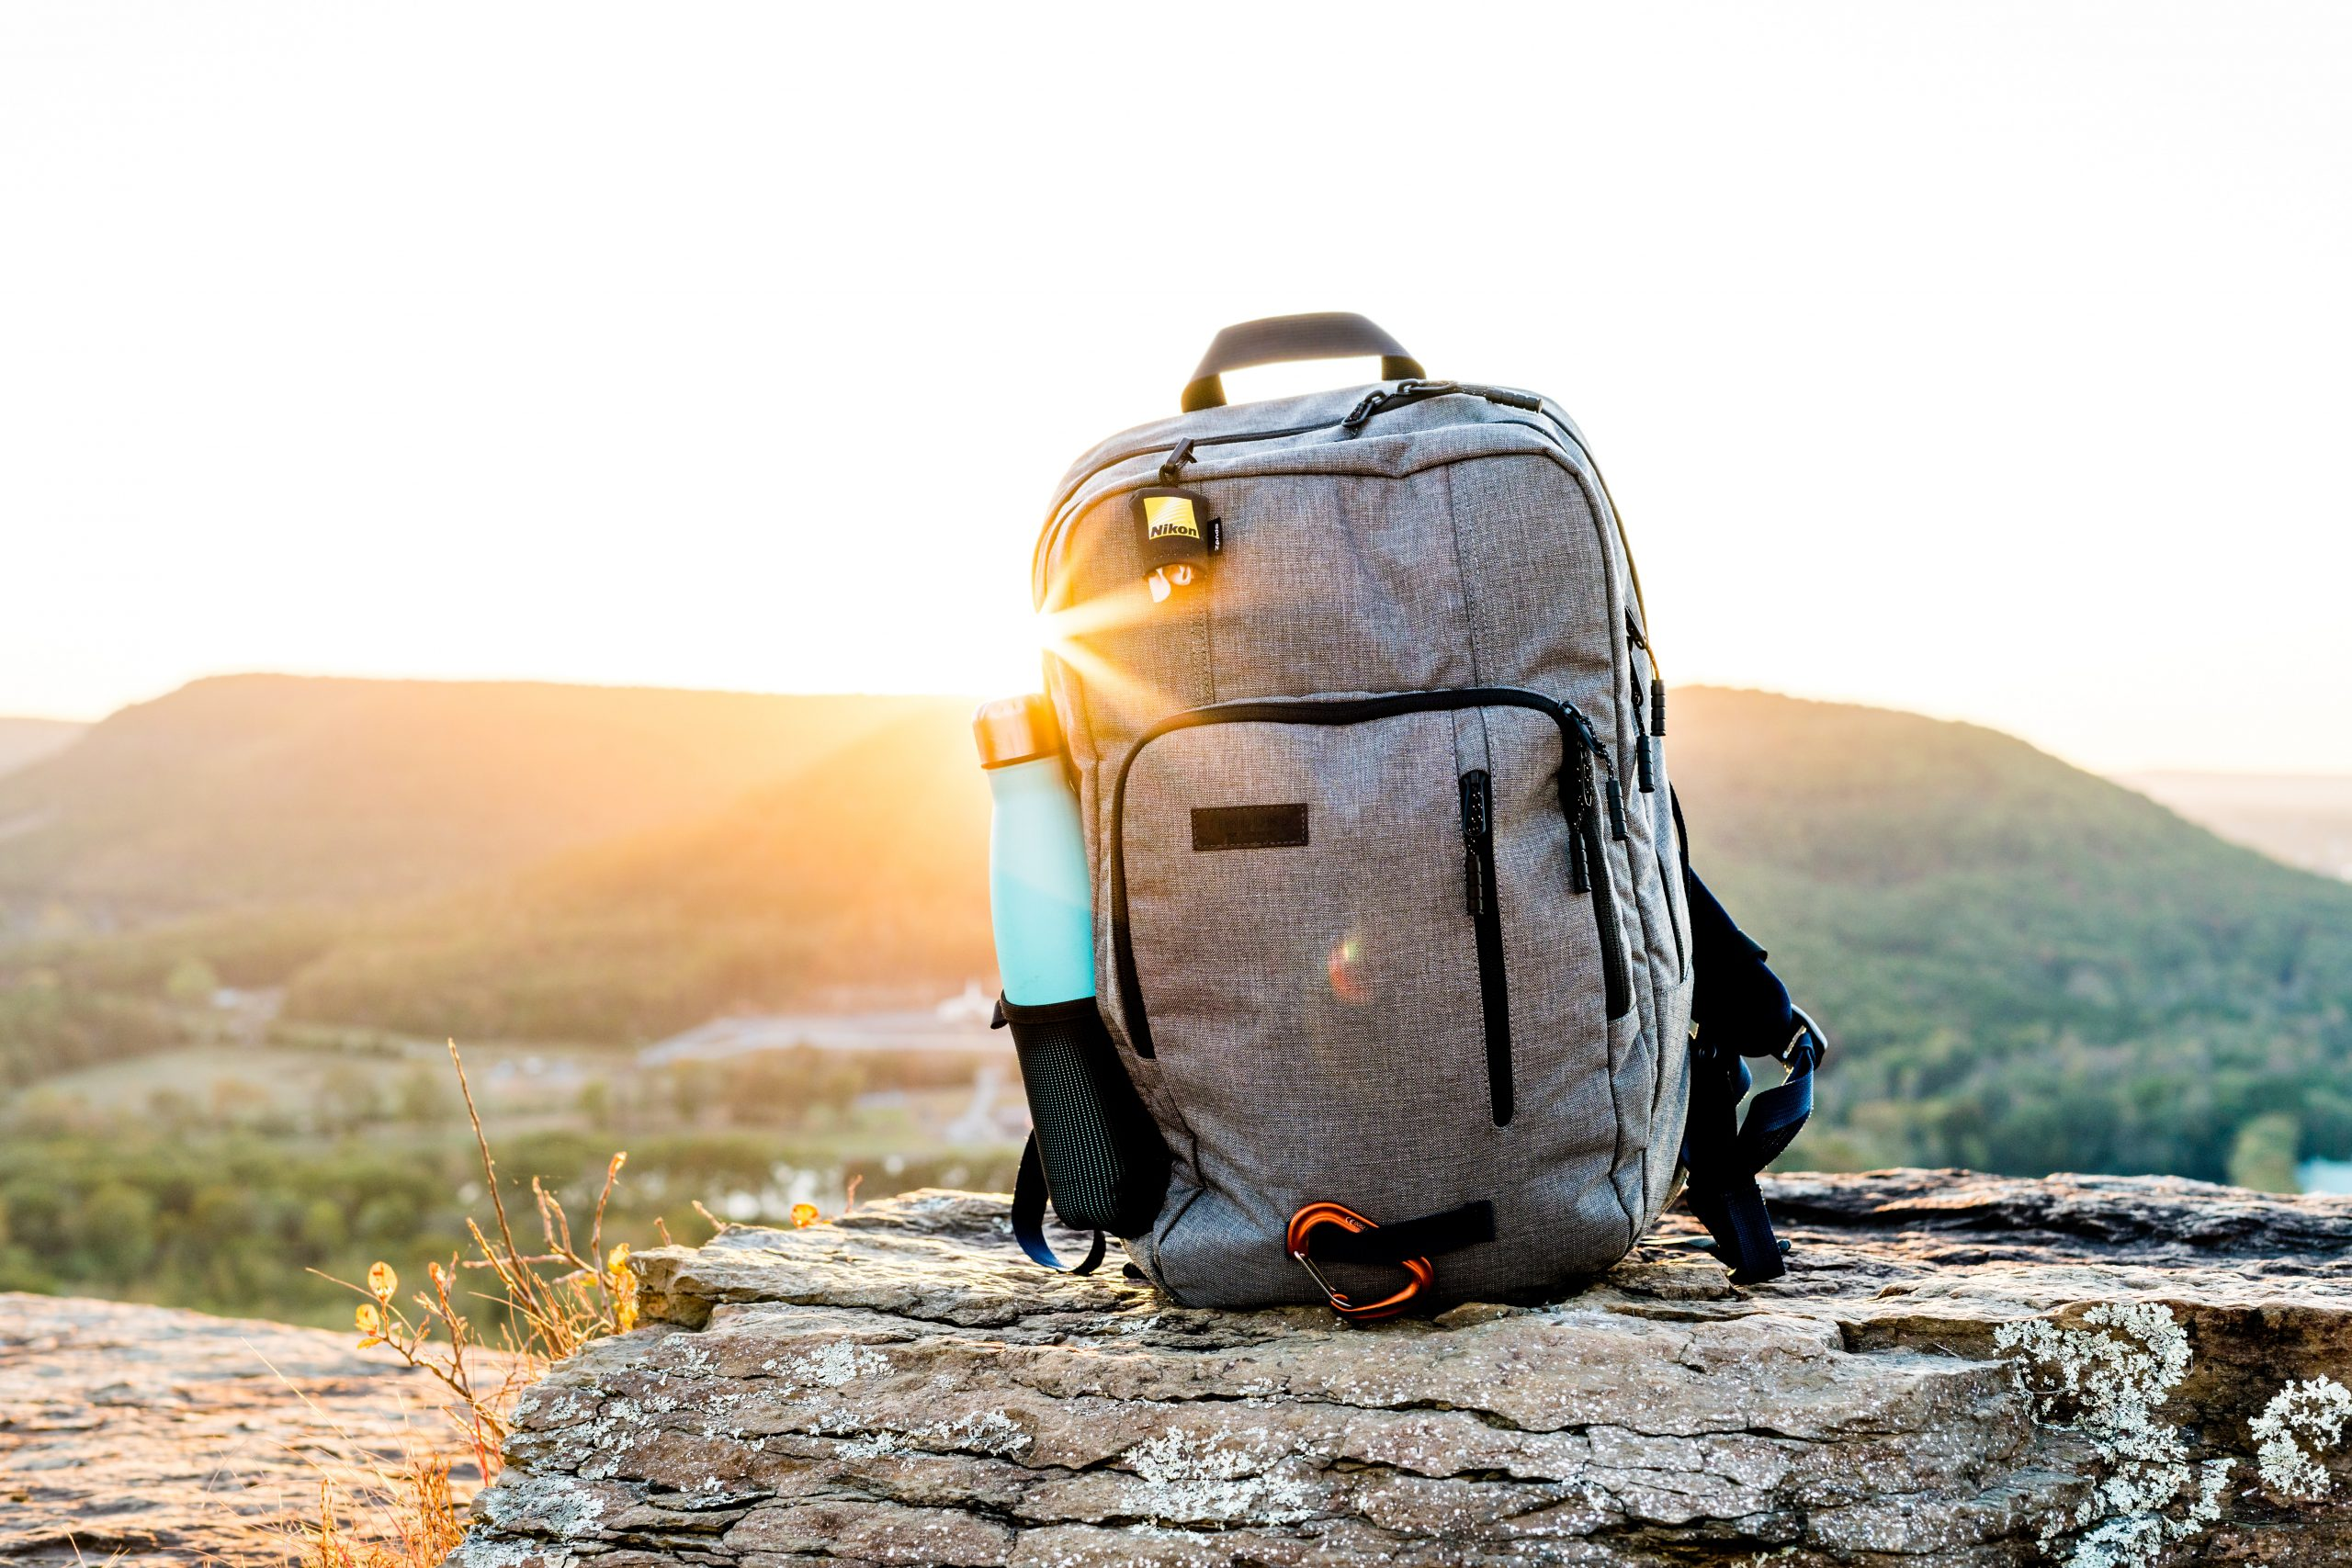 whats in my backpack photography ideas for instagram